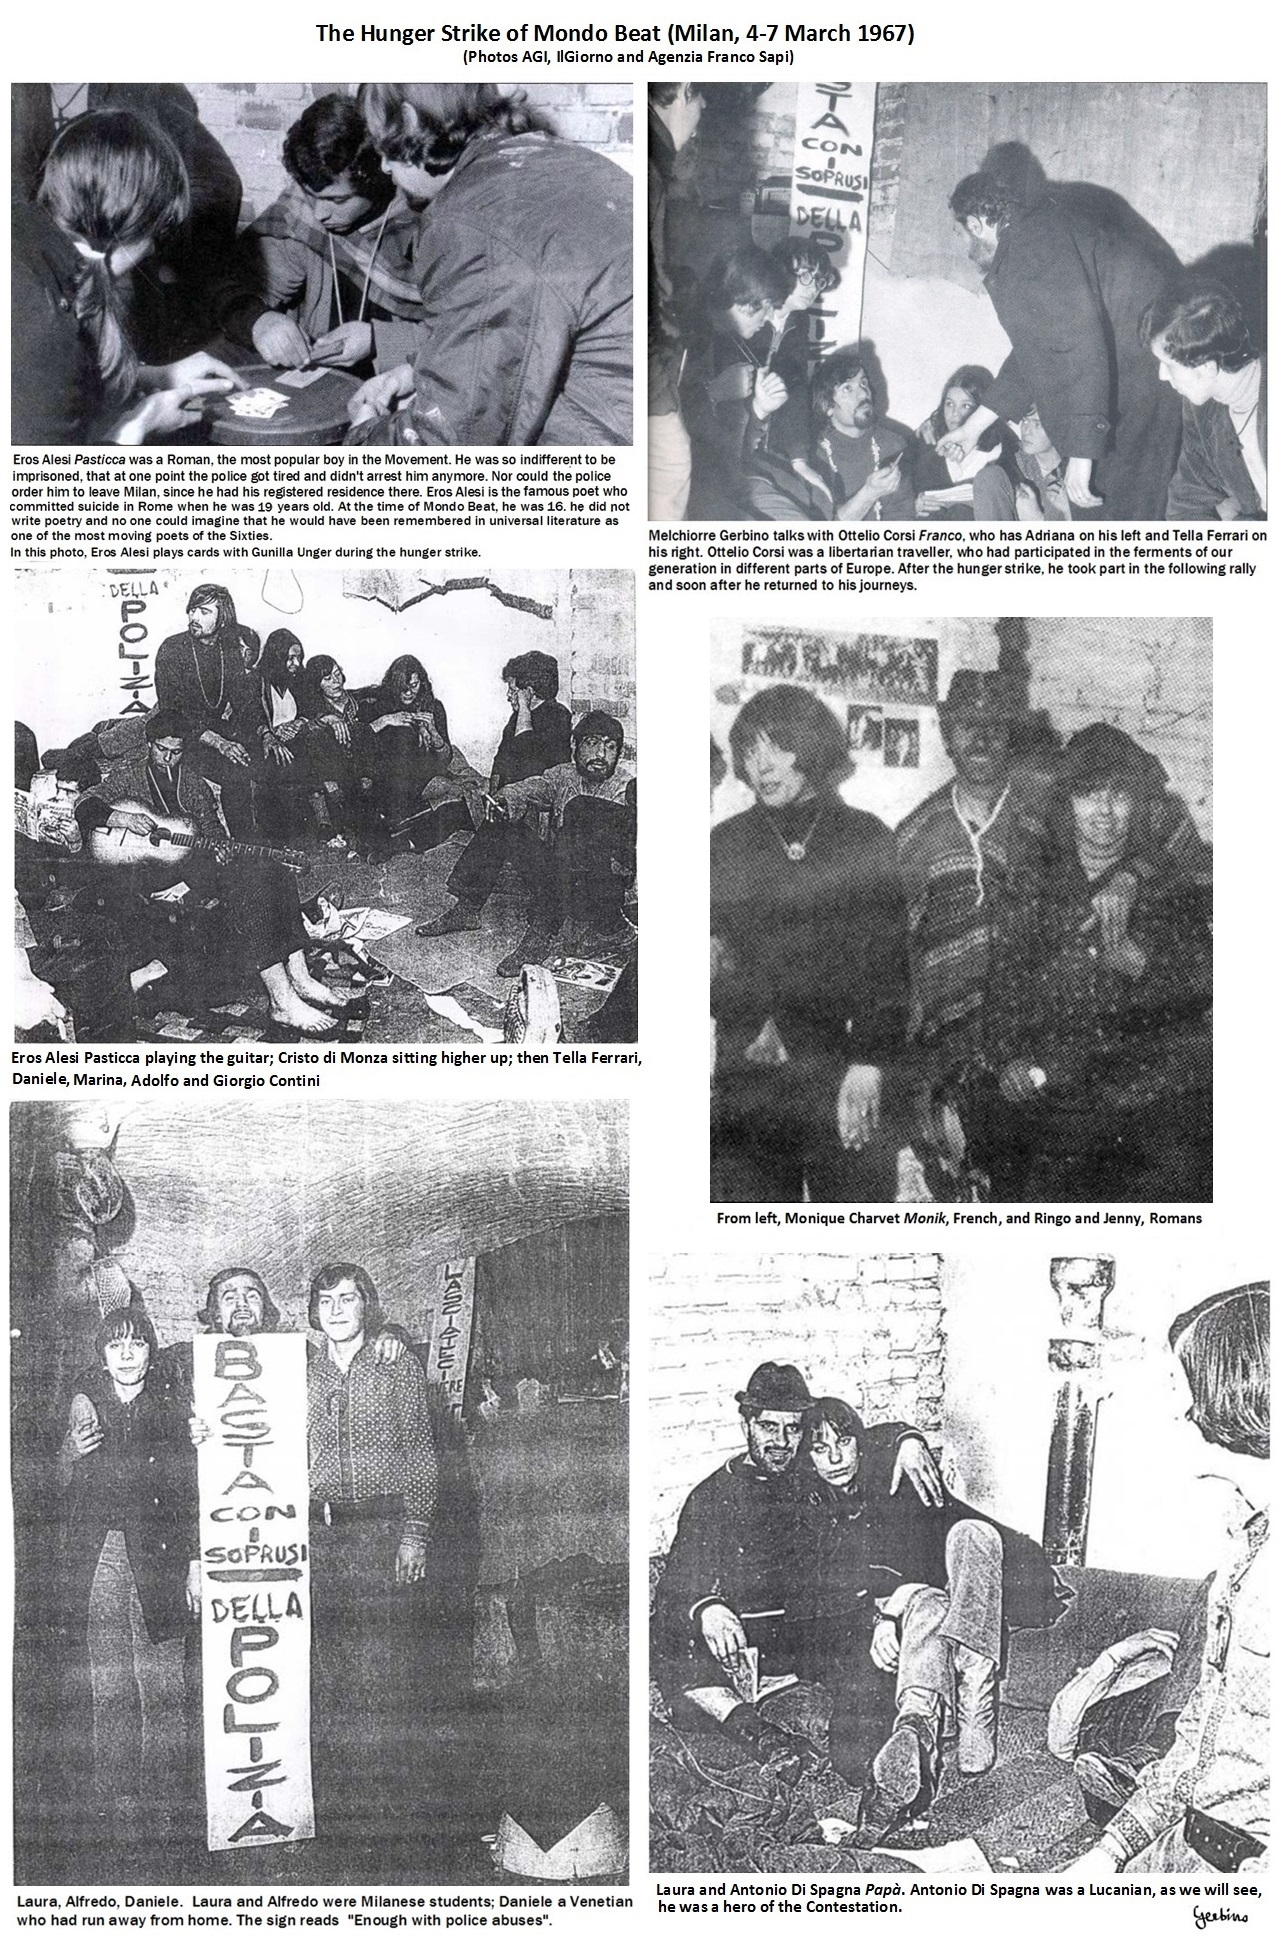 The hunger strike was the first Mondo Beat event covered by the press throughout the Italian territory